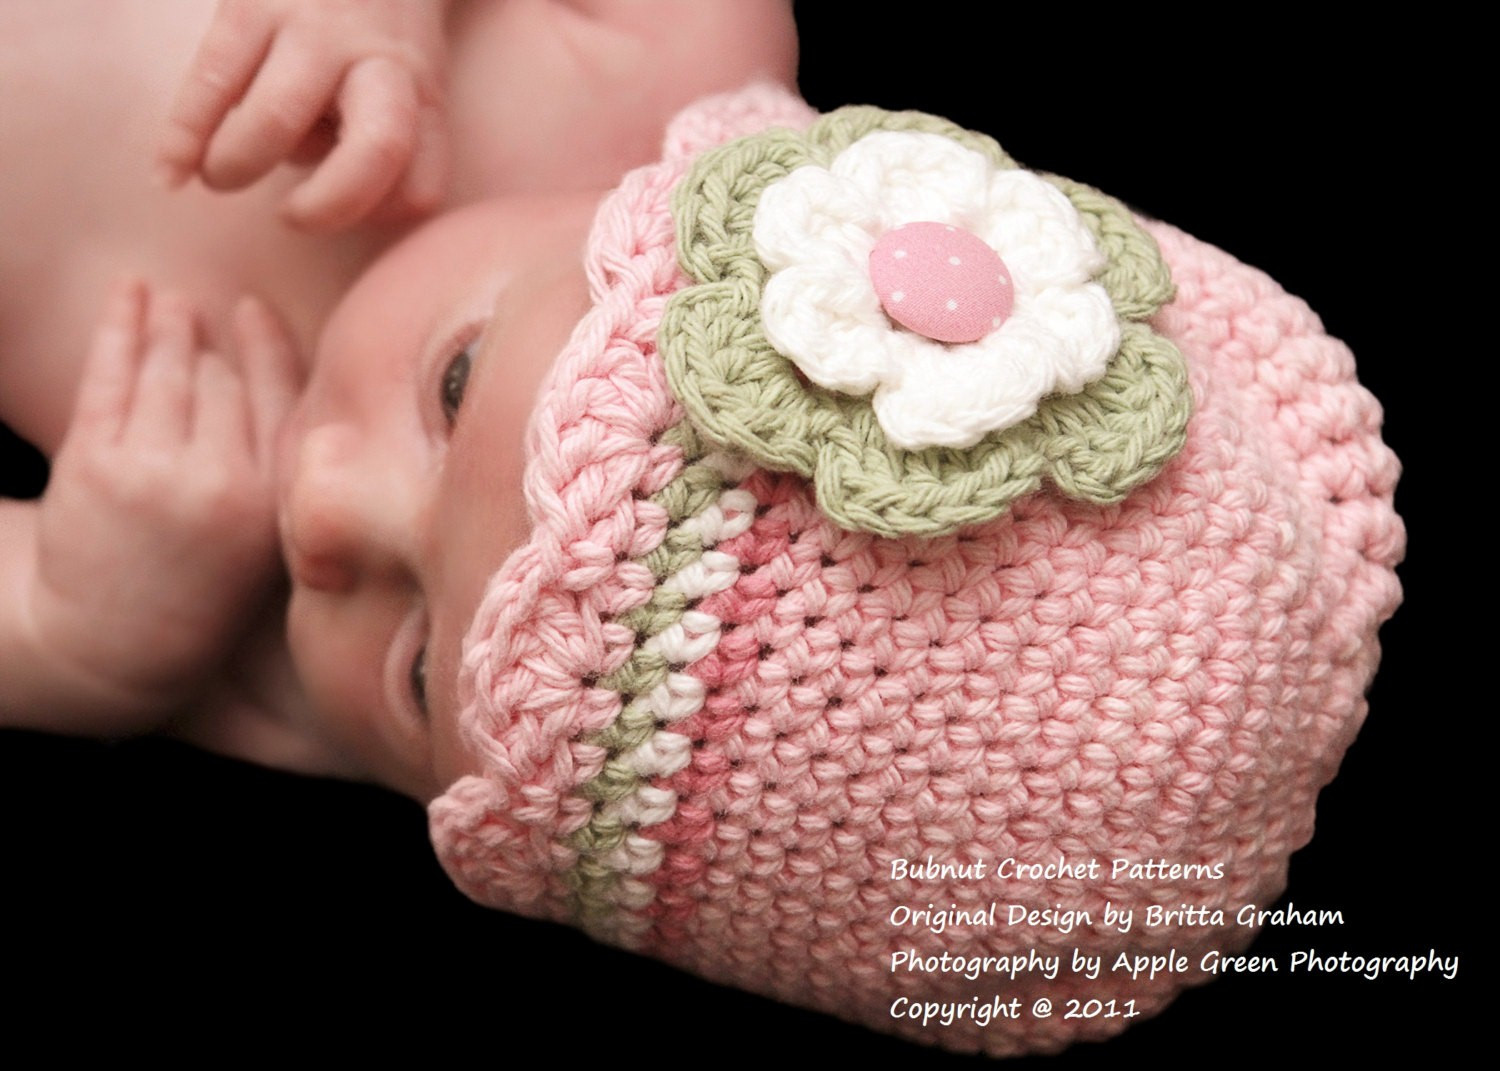 Newborn Baby Hat Crochet Pattern Luxury Free Crochet Baby Hats Patterns for Beginners Of Superb 44 Pictures Newborn Baby Hat Crochet Pattern